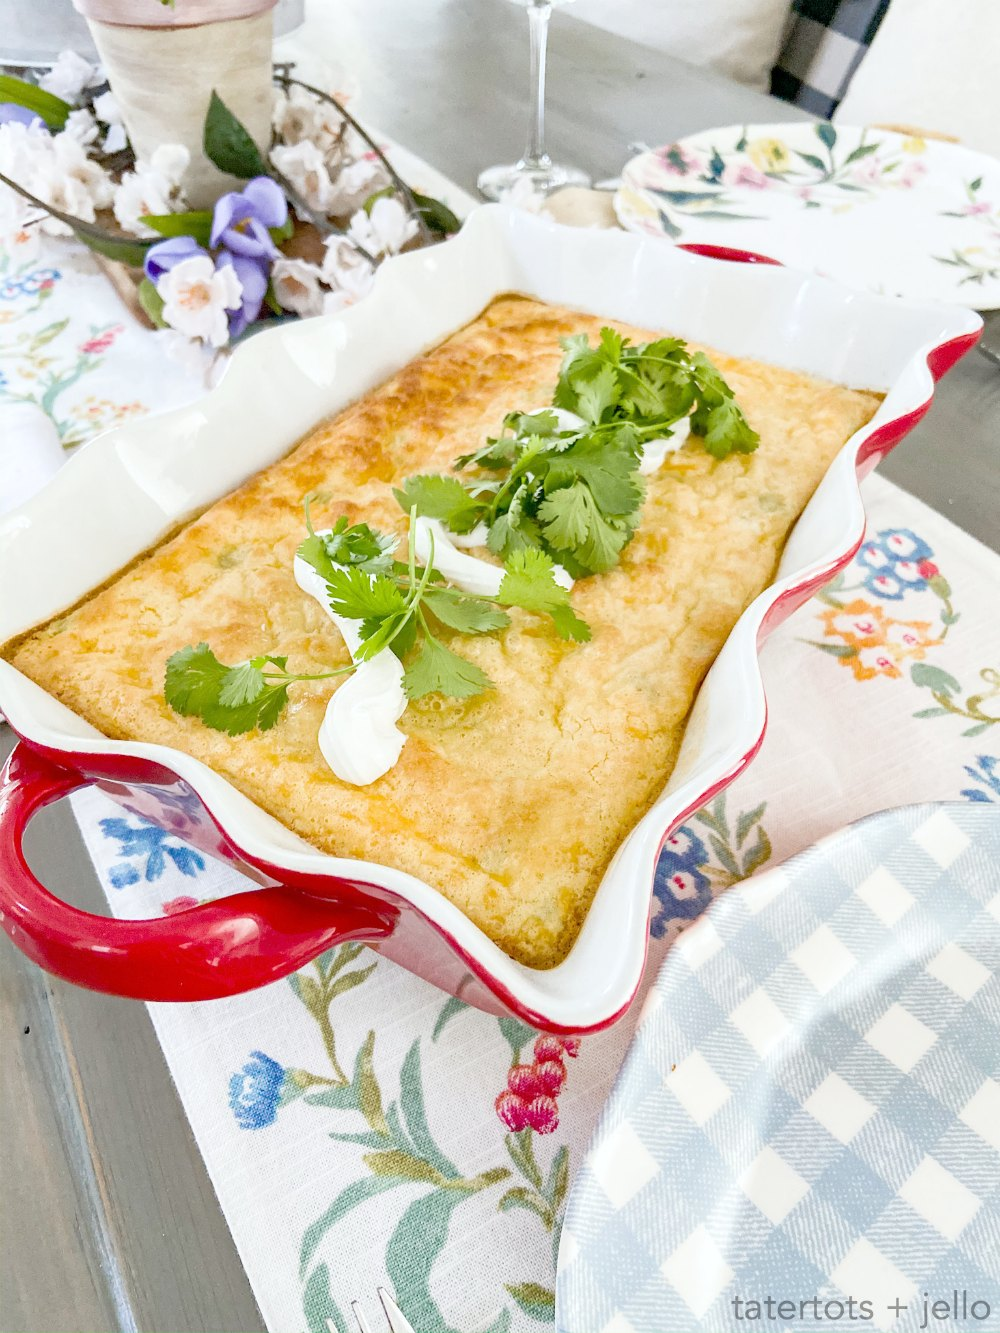 Mom's Classic Green Chili Egg Casserole. Whip up this classic, light and fluffy egg casserole with just a the perfect combination of cheese and tangy green chilis.